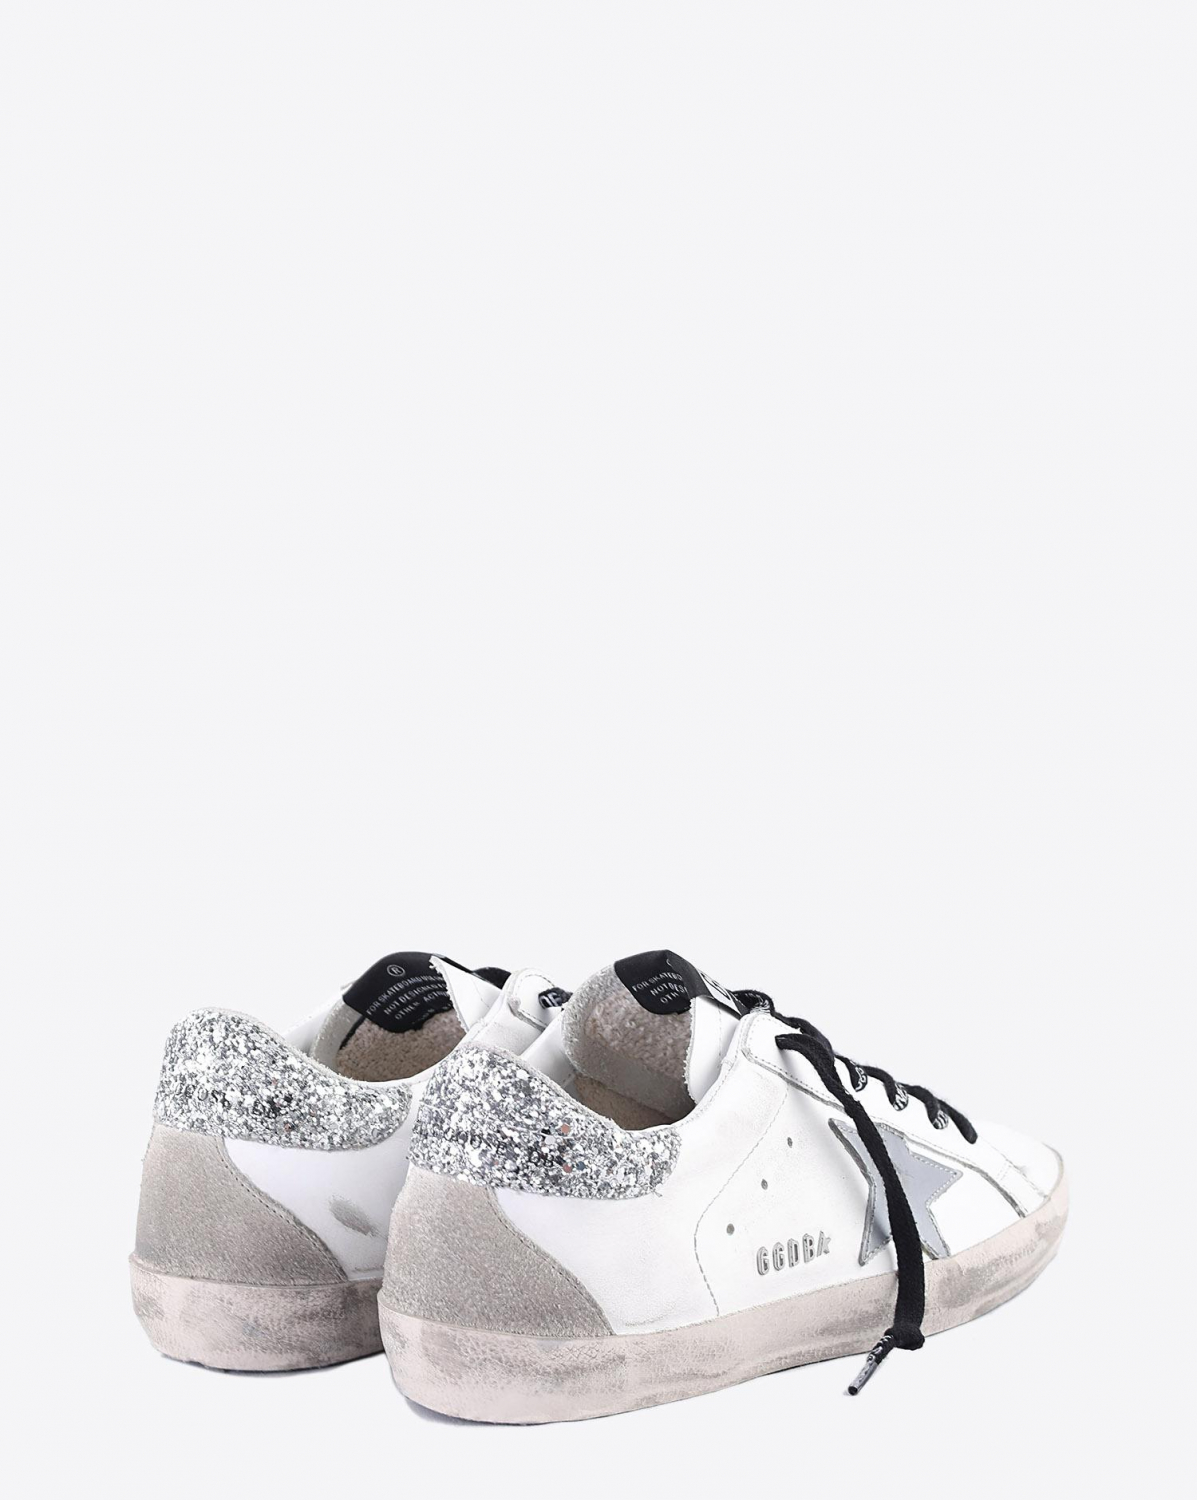 Golden Goose Woman Collection Sneakers Superstar - White - Silver Glitter - Metal Lettering